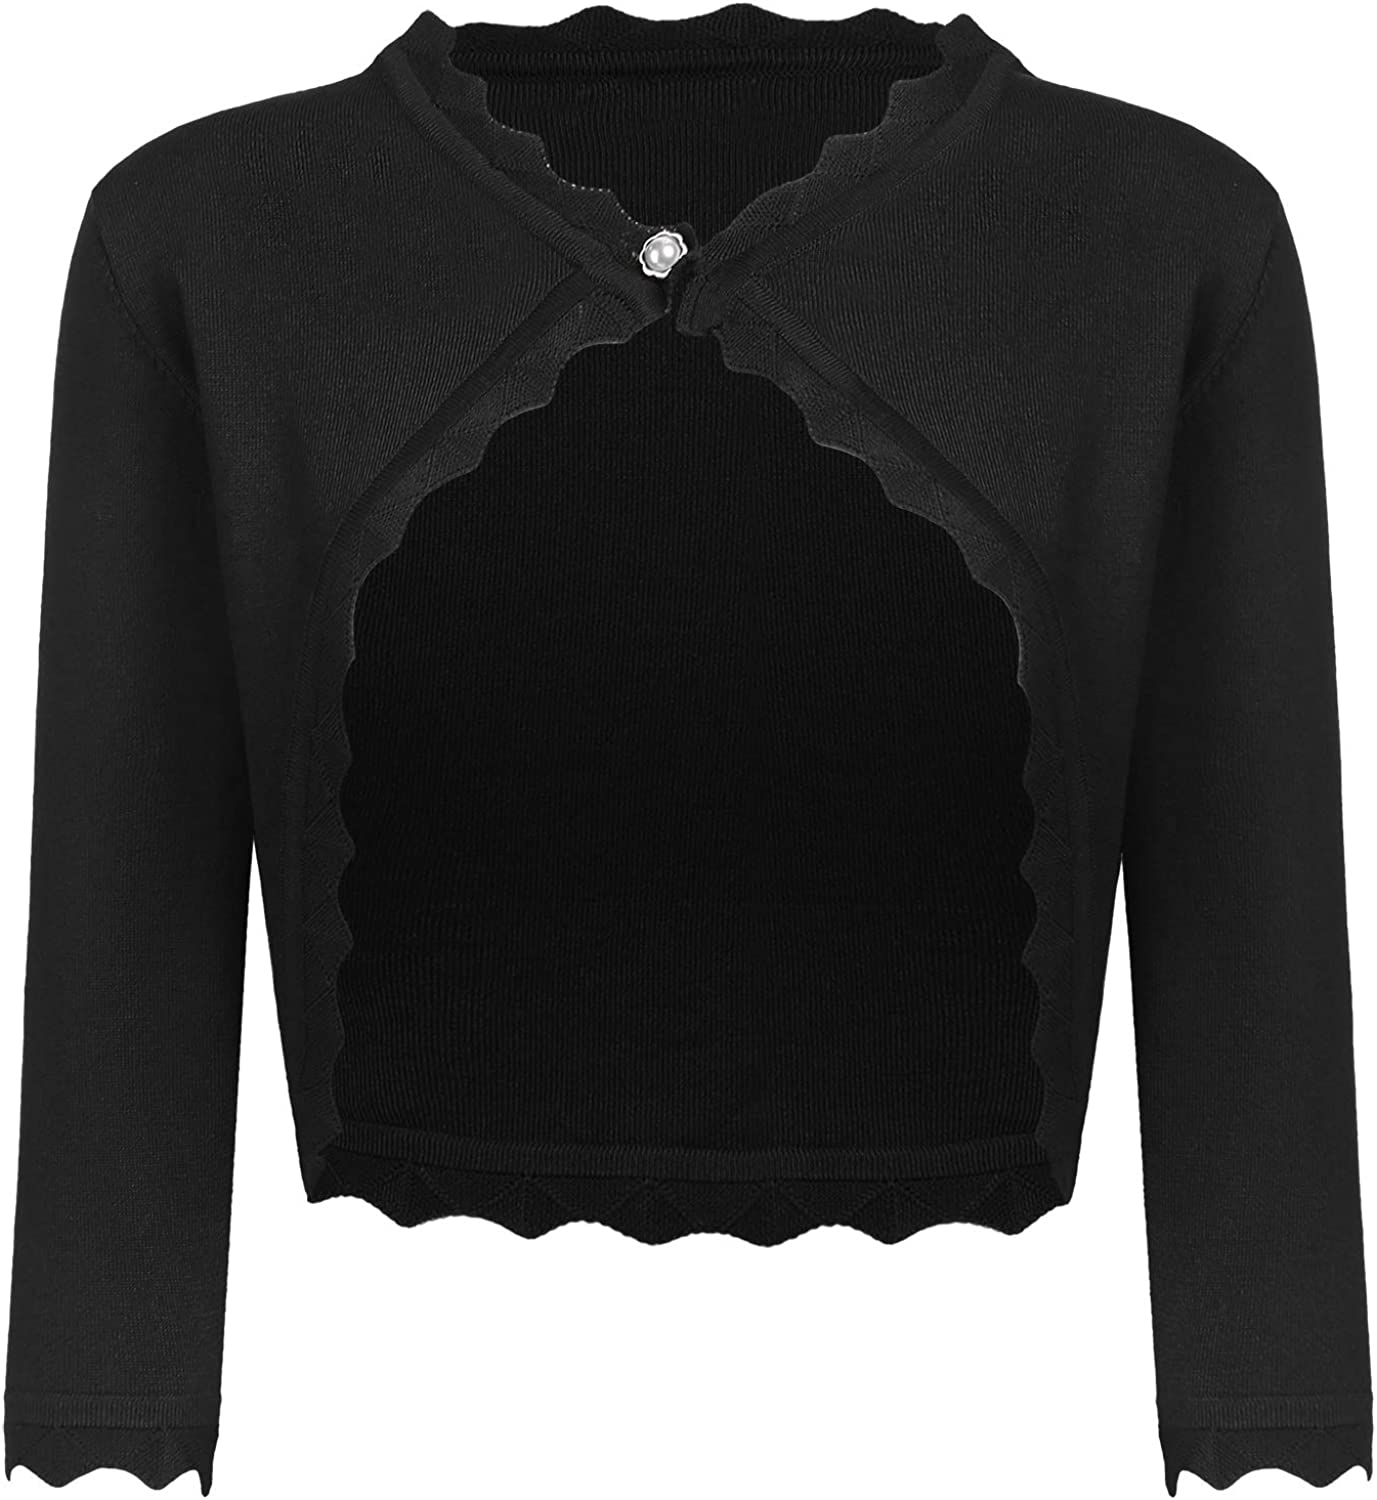 Guteer Women's Bolero Cropped Cardigan free Clearance SALE! Limited time! Front Shrug J Open